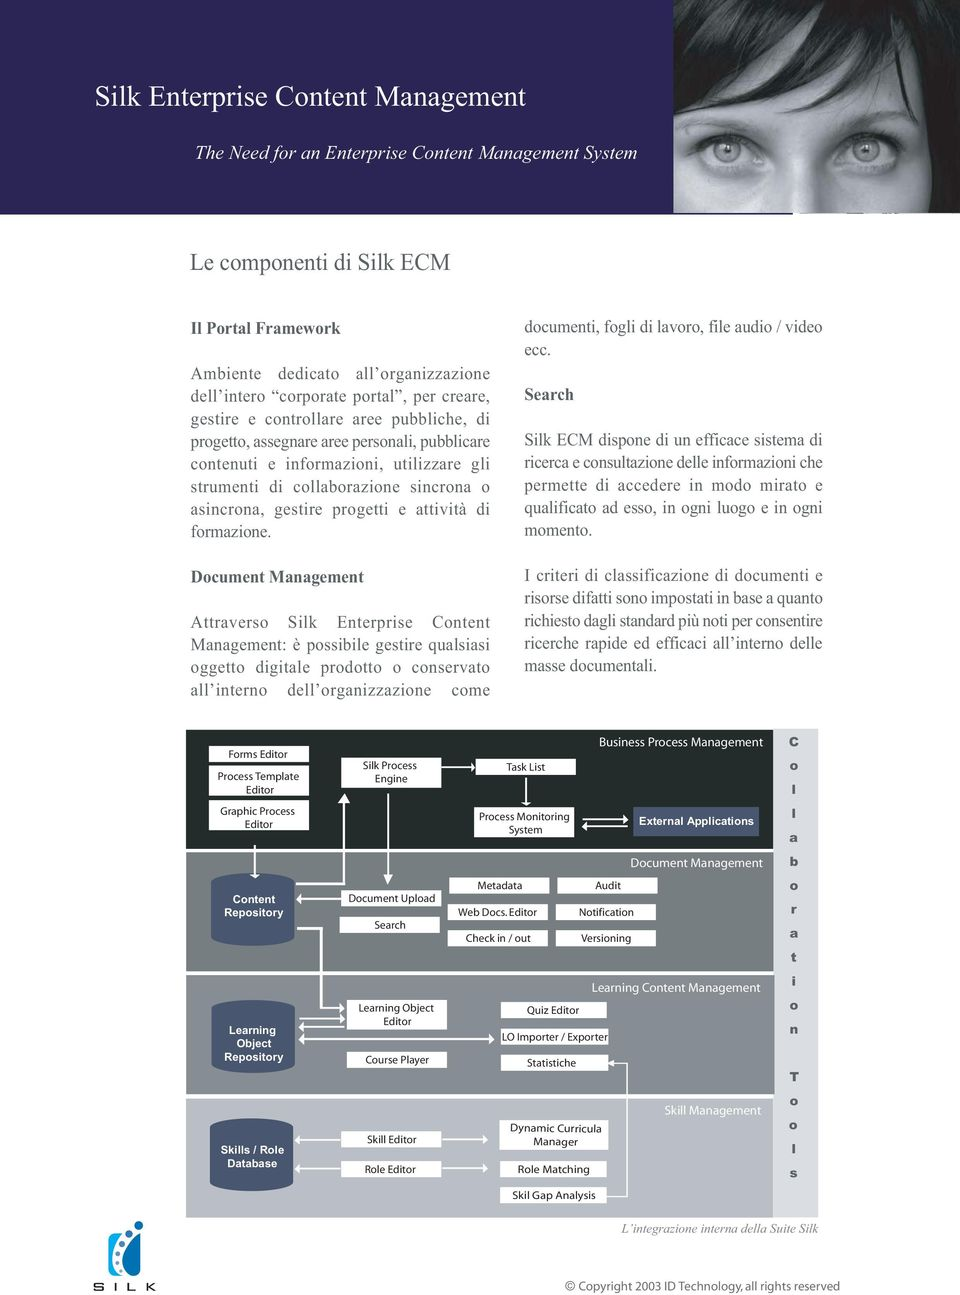 Dcument Management Attravers Silk Enterprise Cntent Management: è pssibile gestire qualsiasi ggett digitale prdtt cnservat all intern dell rganizzazine cme dcumenti, fgli di lavr, file audi / vide